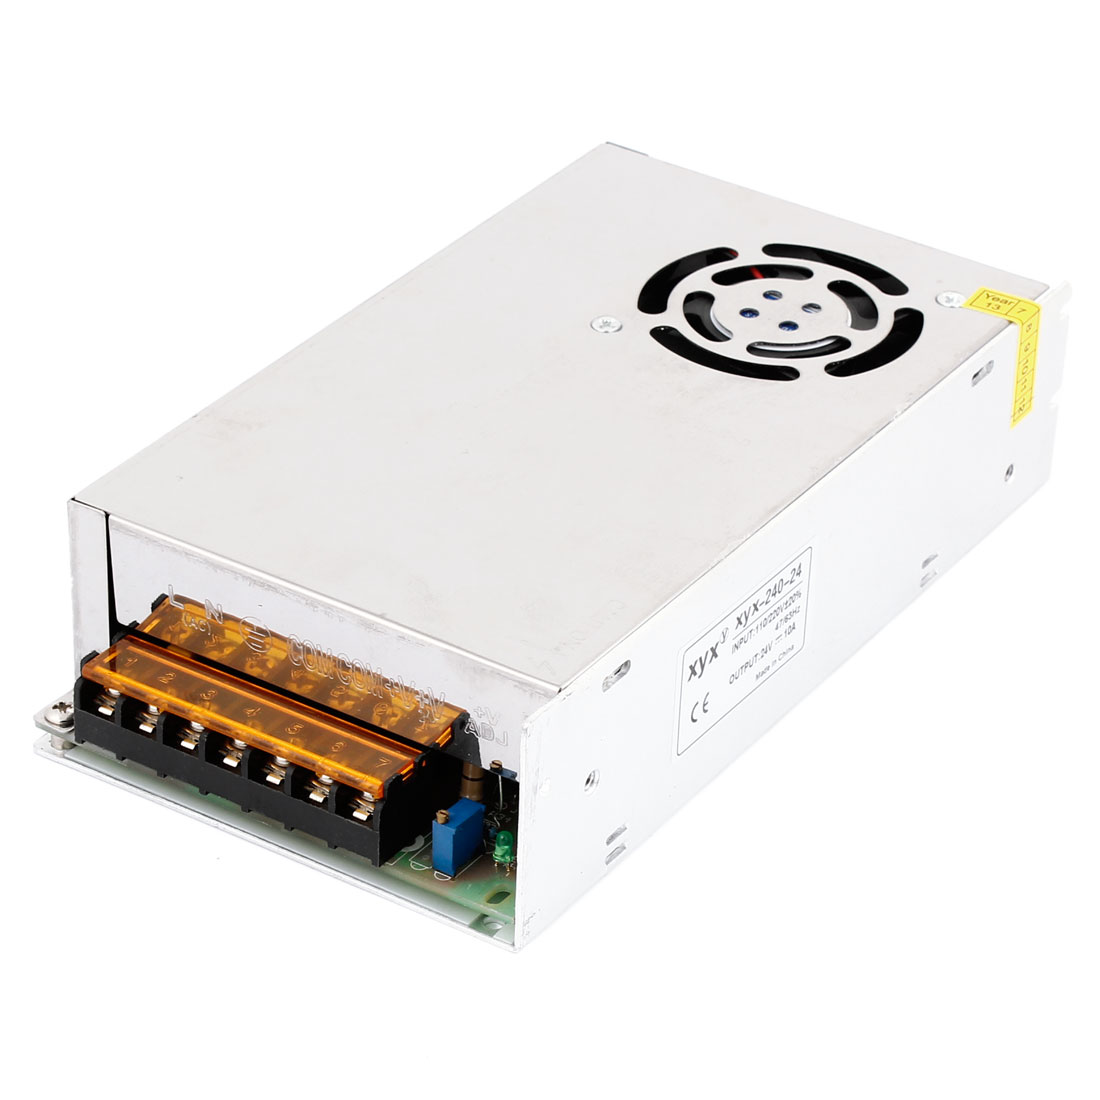 AC110/220V DC24V 10A Metal Switch Power Supply Driver for LED Strip Light